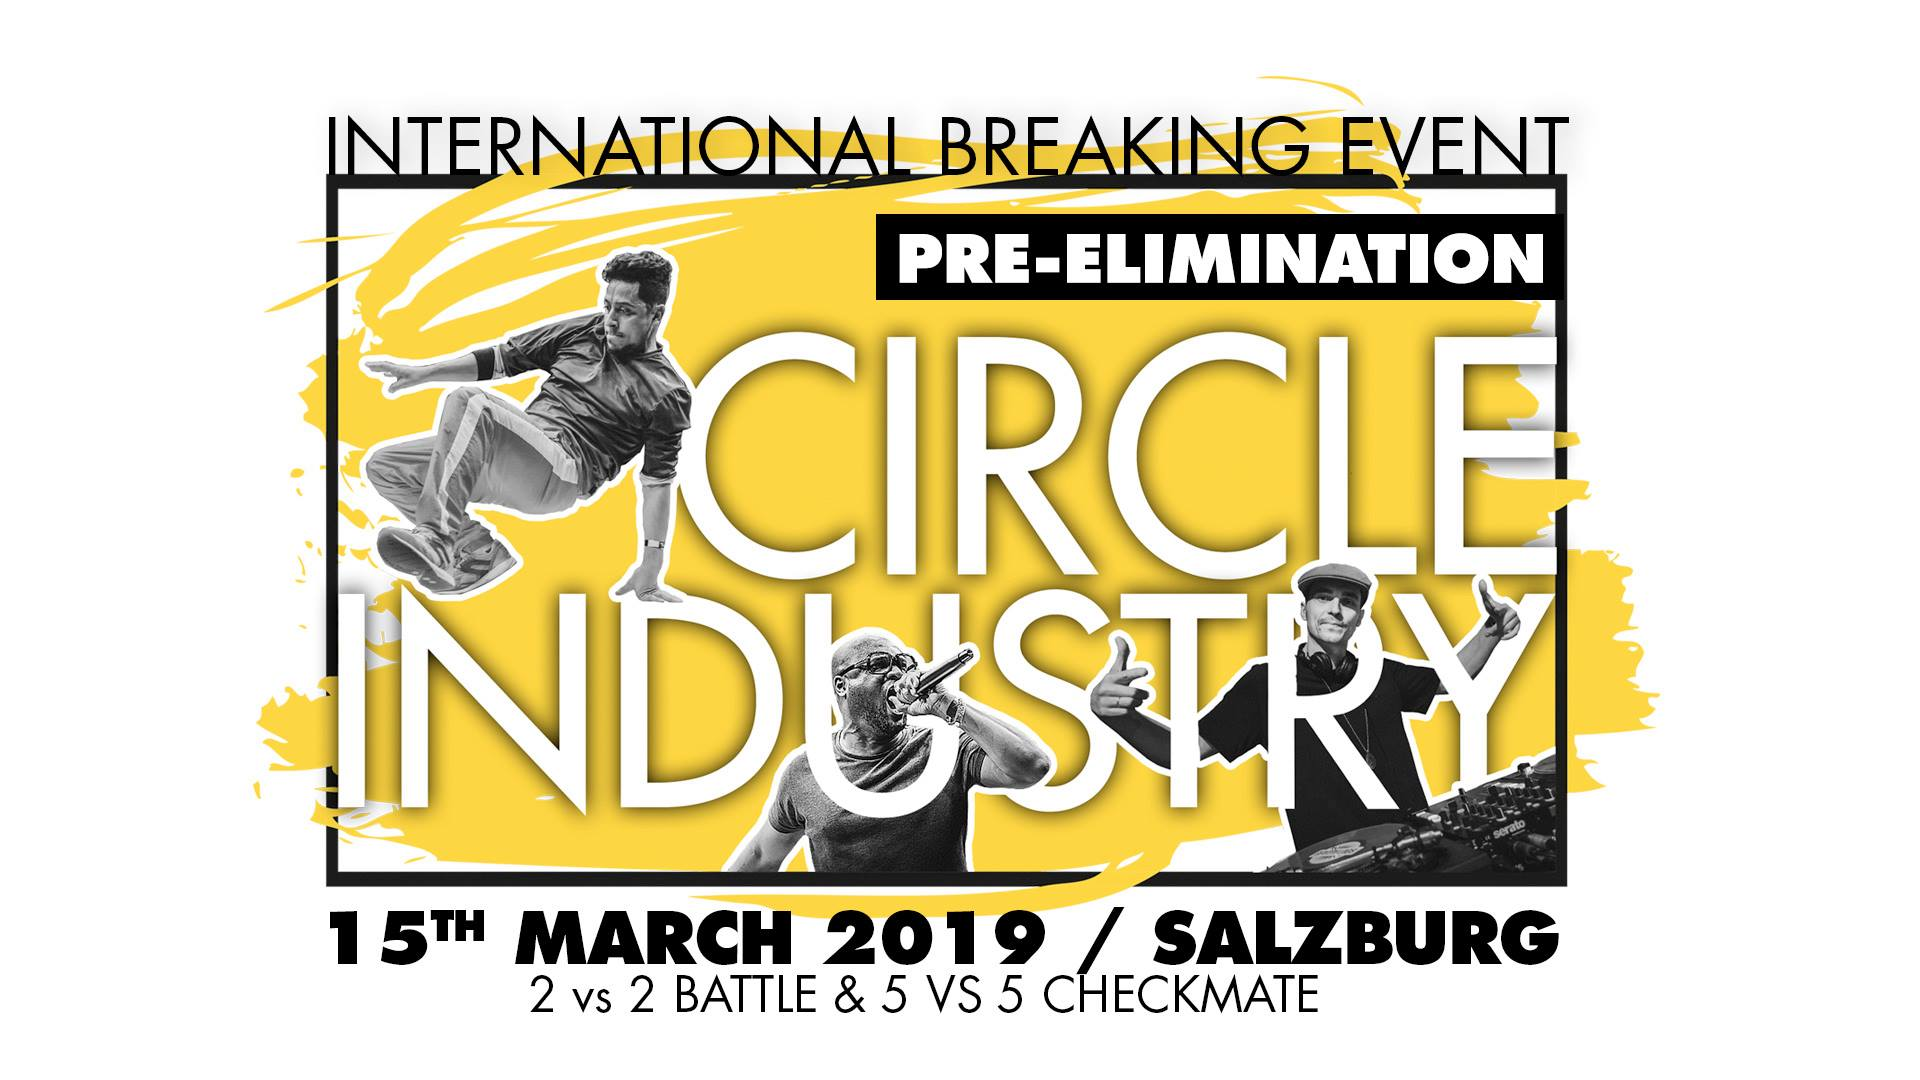 Circle Industry Pre-Elimination on March 15 2019